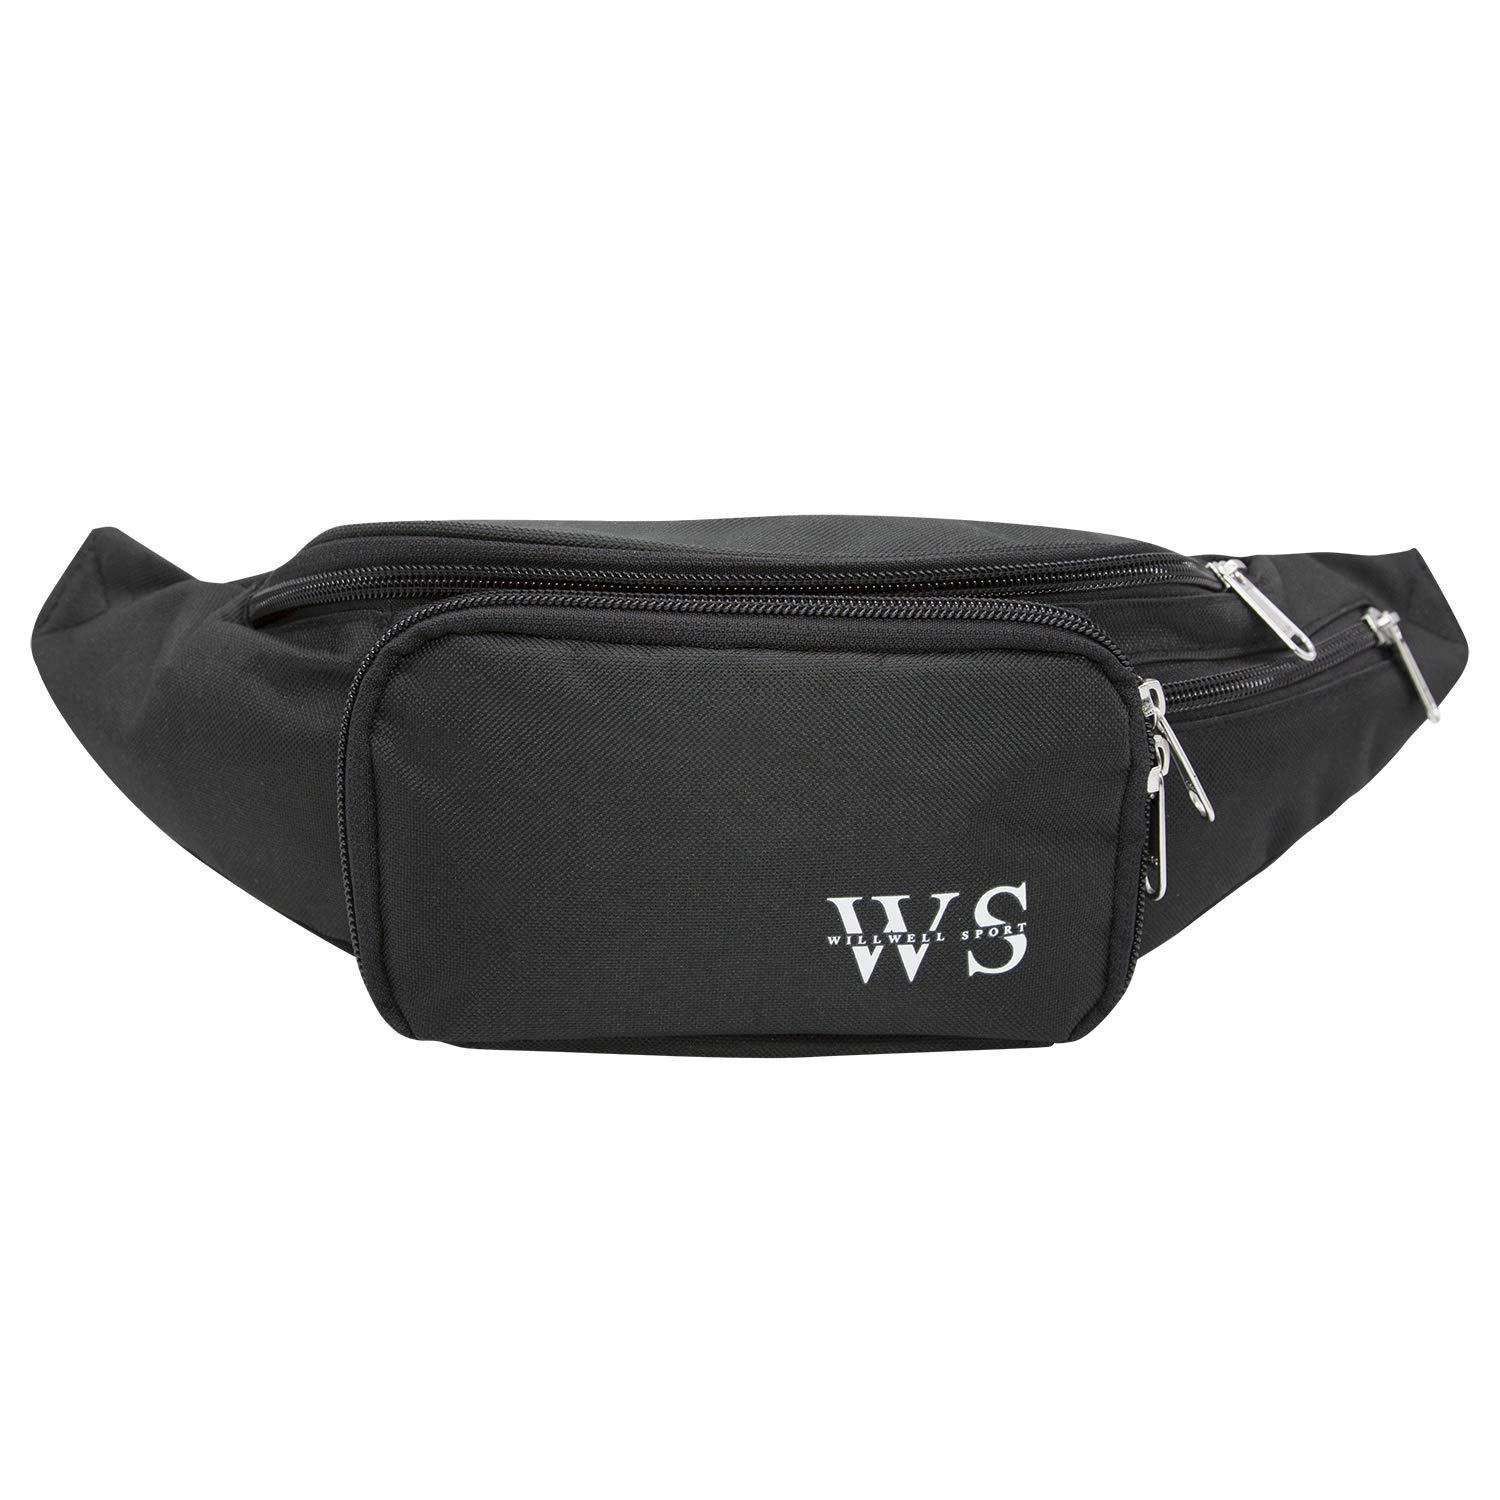 WILLWELL SPORT Bumbag Bum Waist bag 4 zippered pockets for travelling Security Waist Pouch Lightweight RFID Waterproof Material Protect Your Conceal Valuable